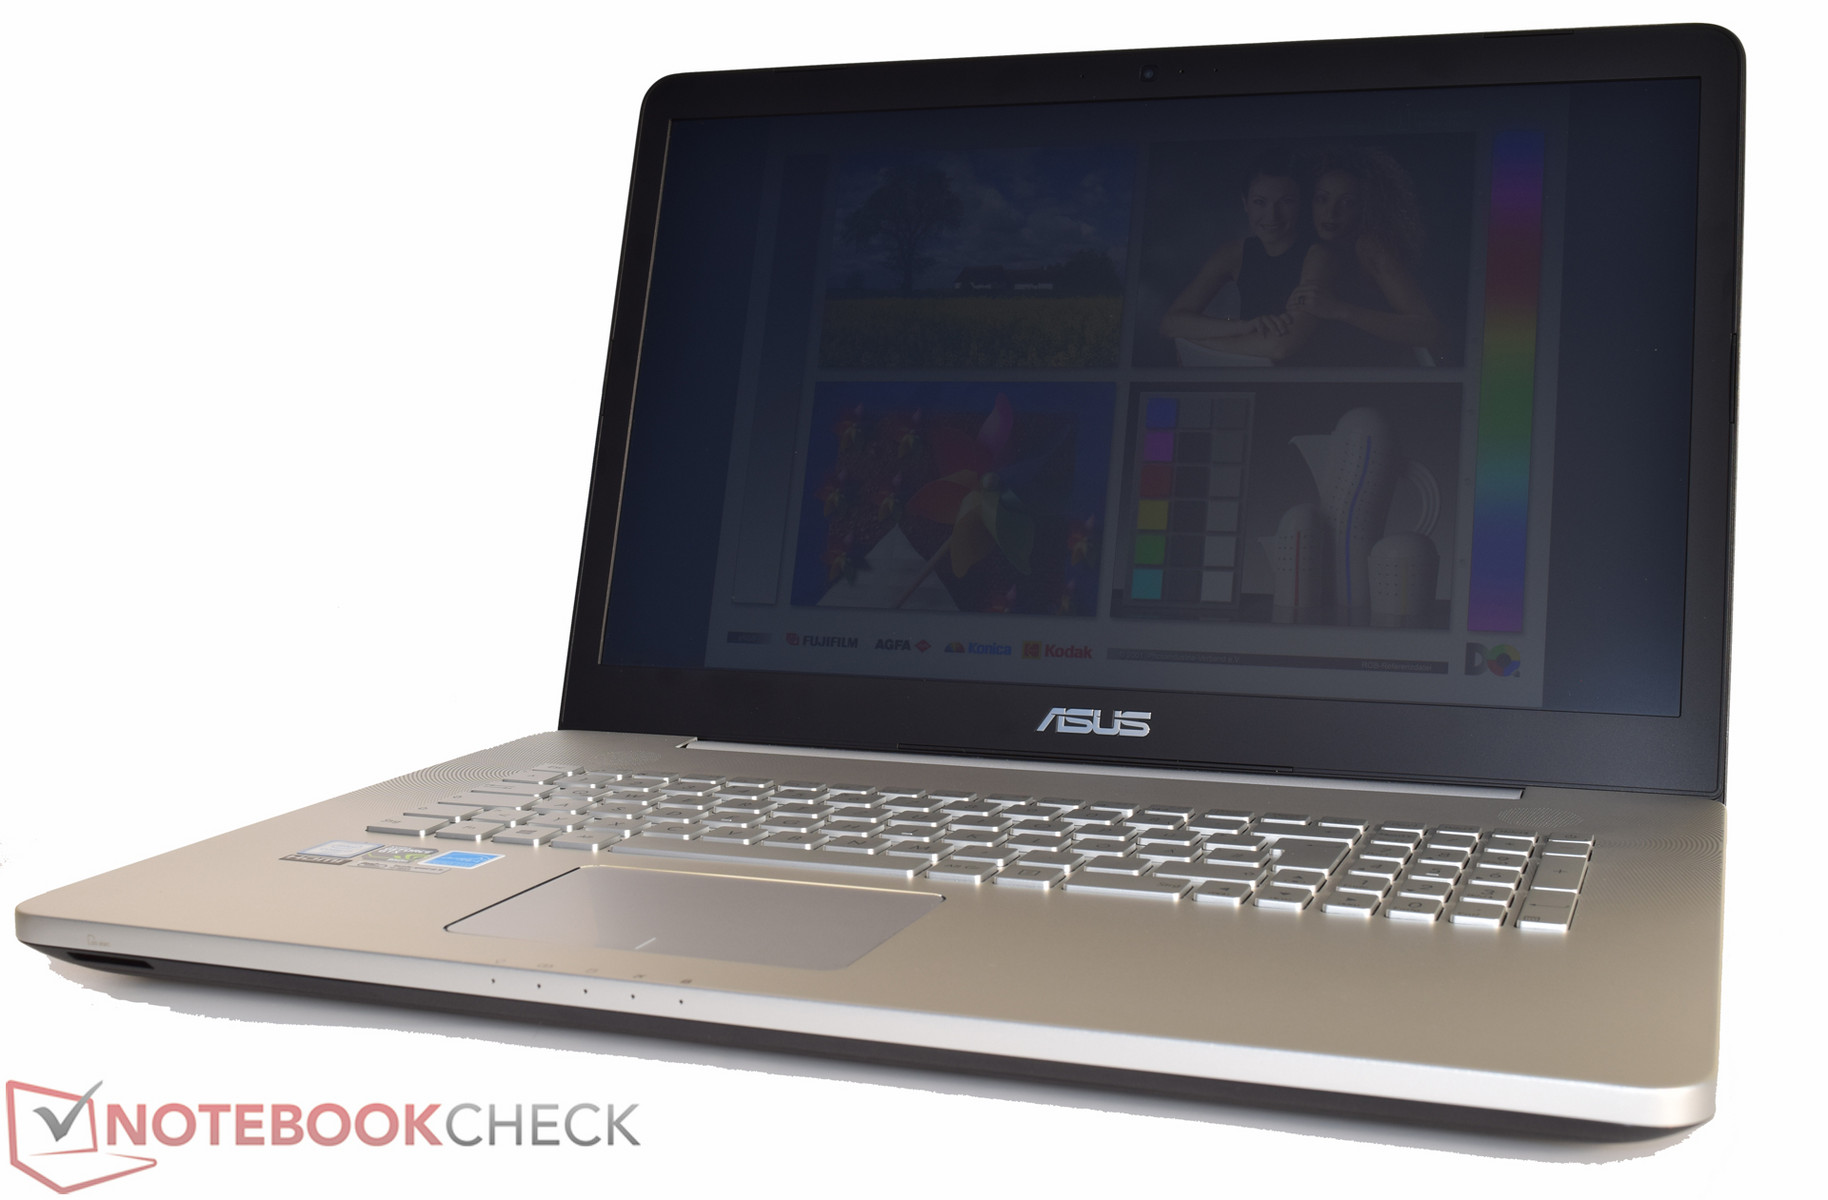 ASUS VIVOBOOK PRO N552VX REALTEK LAN DRIVERS FOR WINDOWS DOWNLOAD